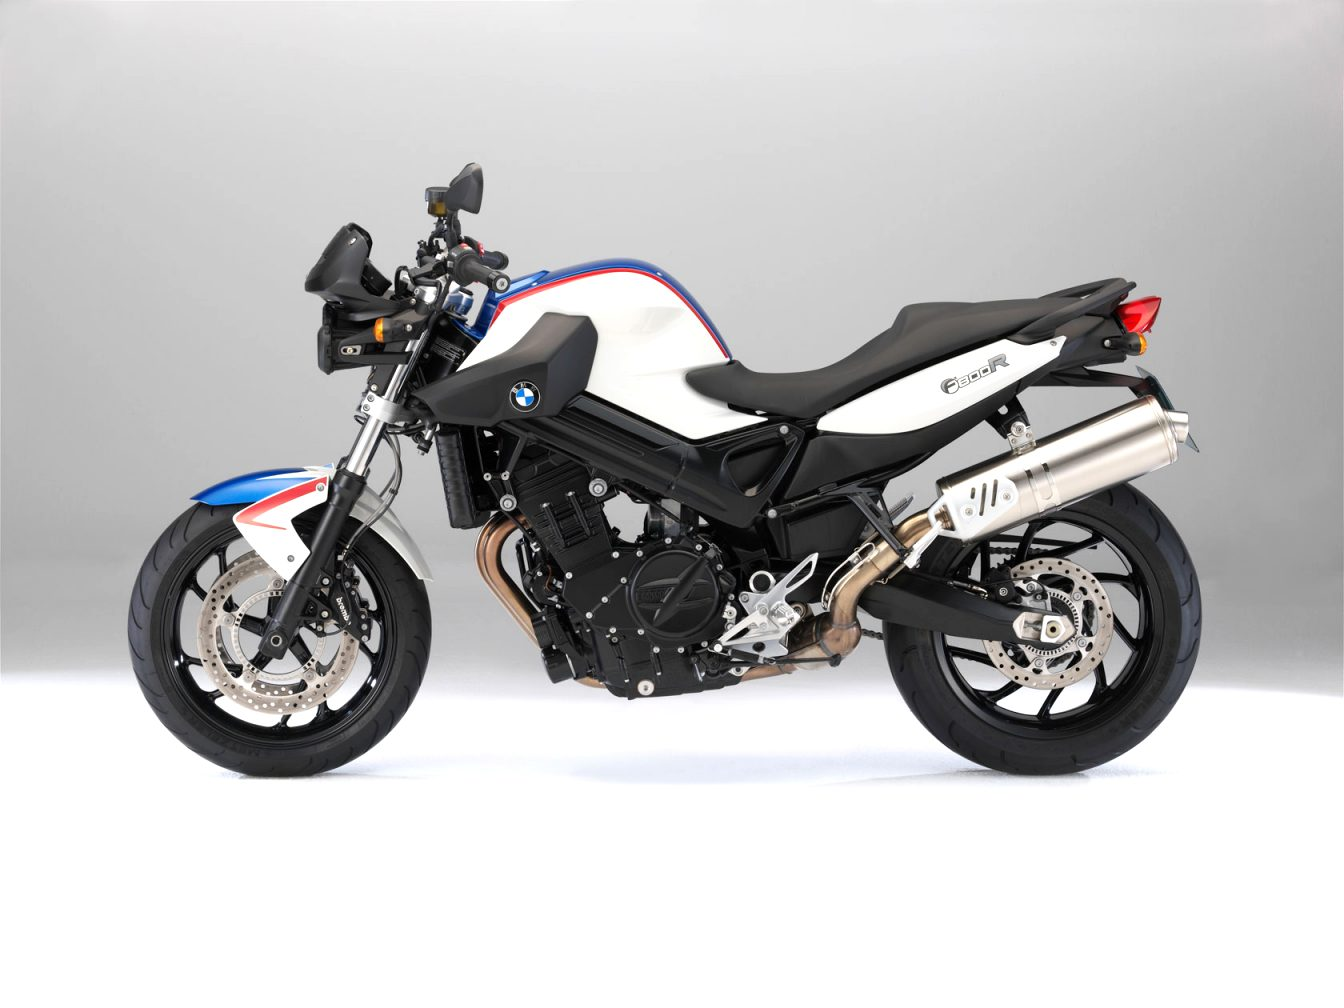 2021 BMW f800r Concept and Review